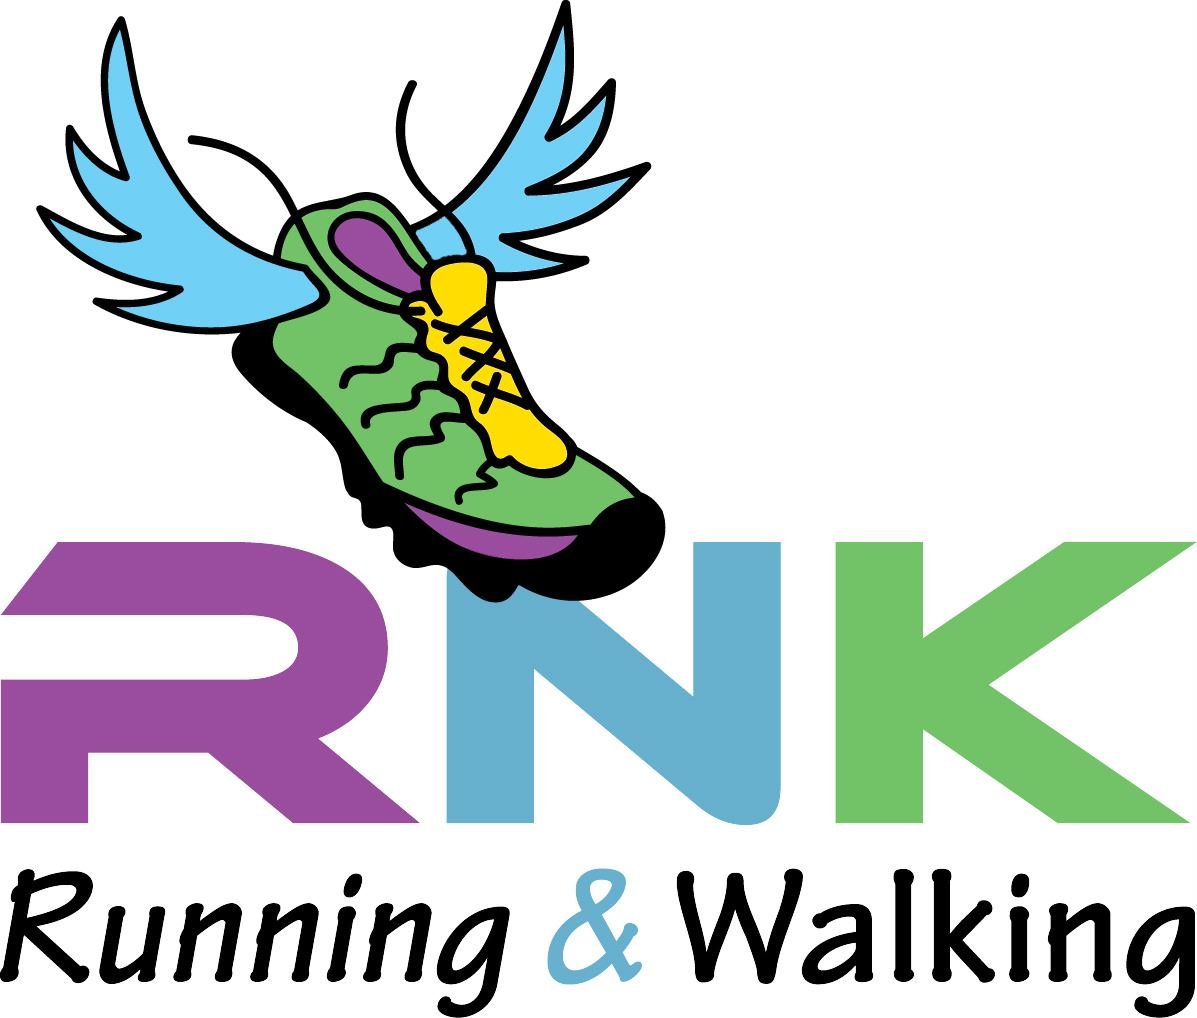 Running & Walking Logo sponsor of Climb4Change